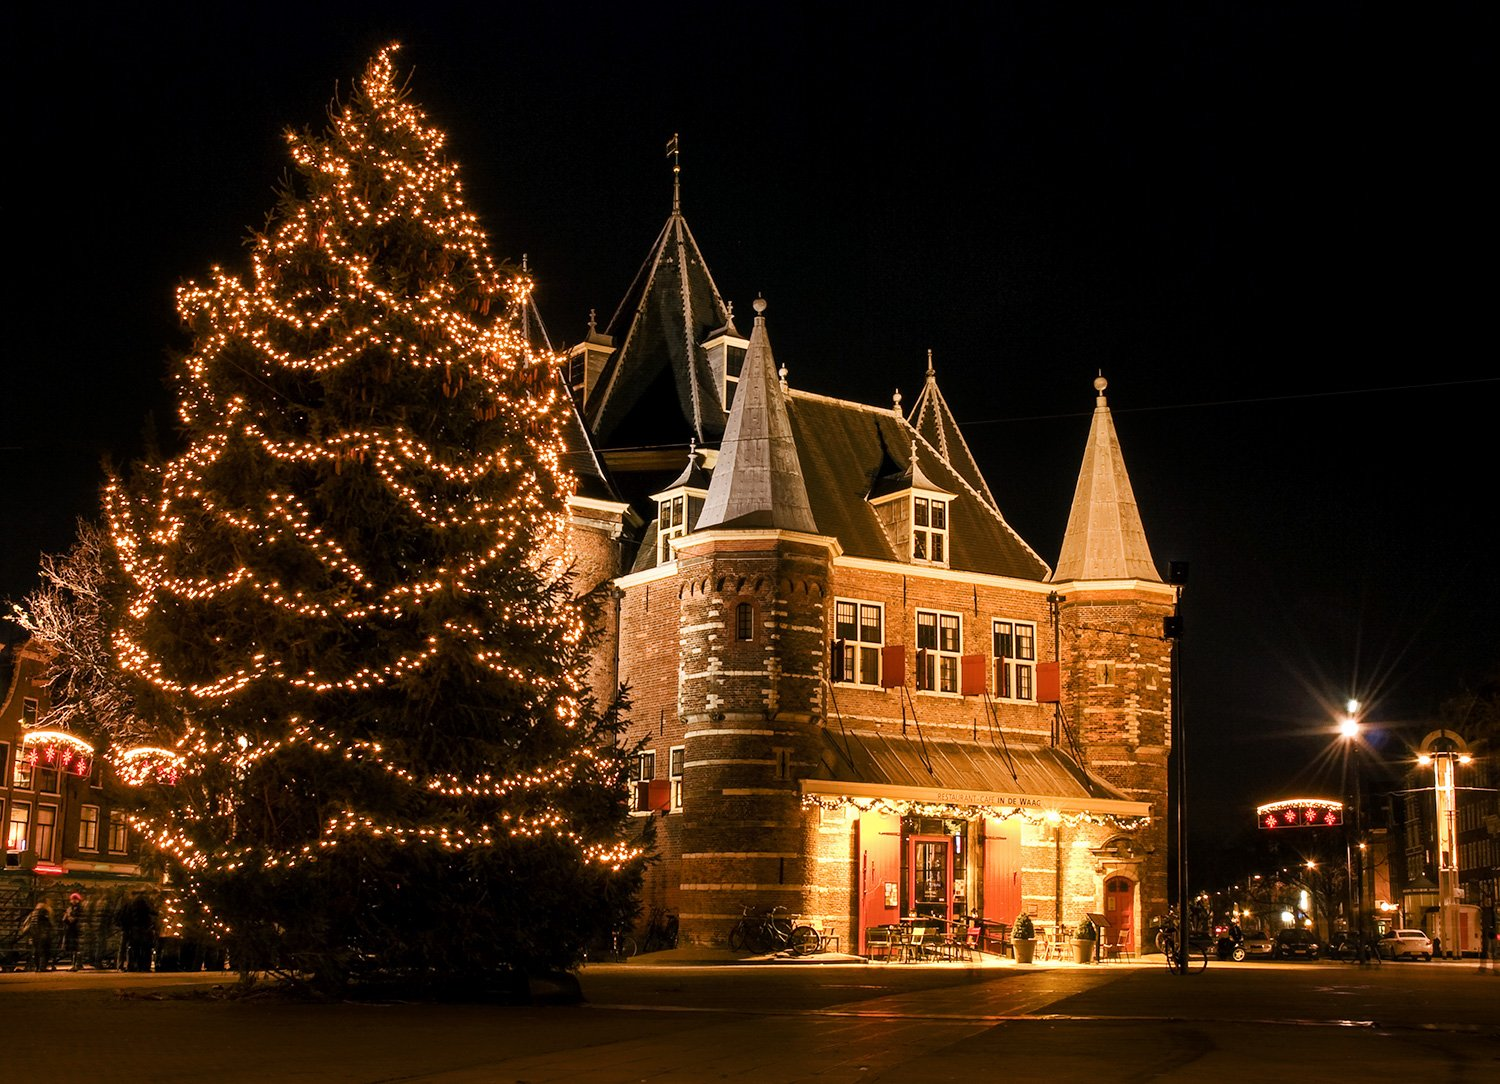 De Waag restaurant during Christmas in Amsterdam